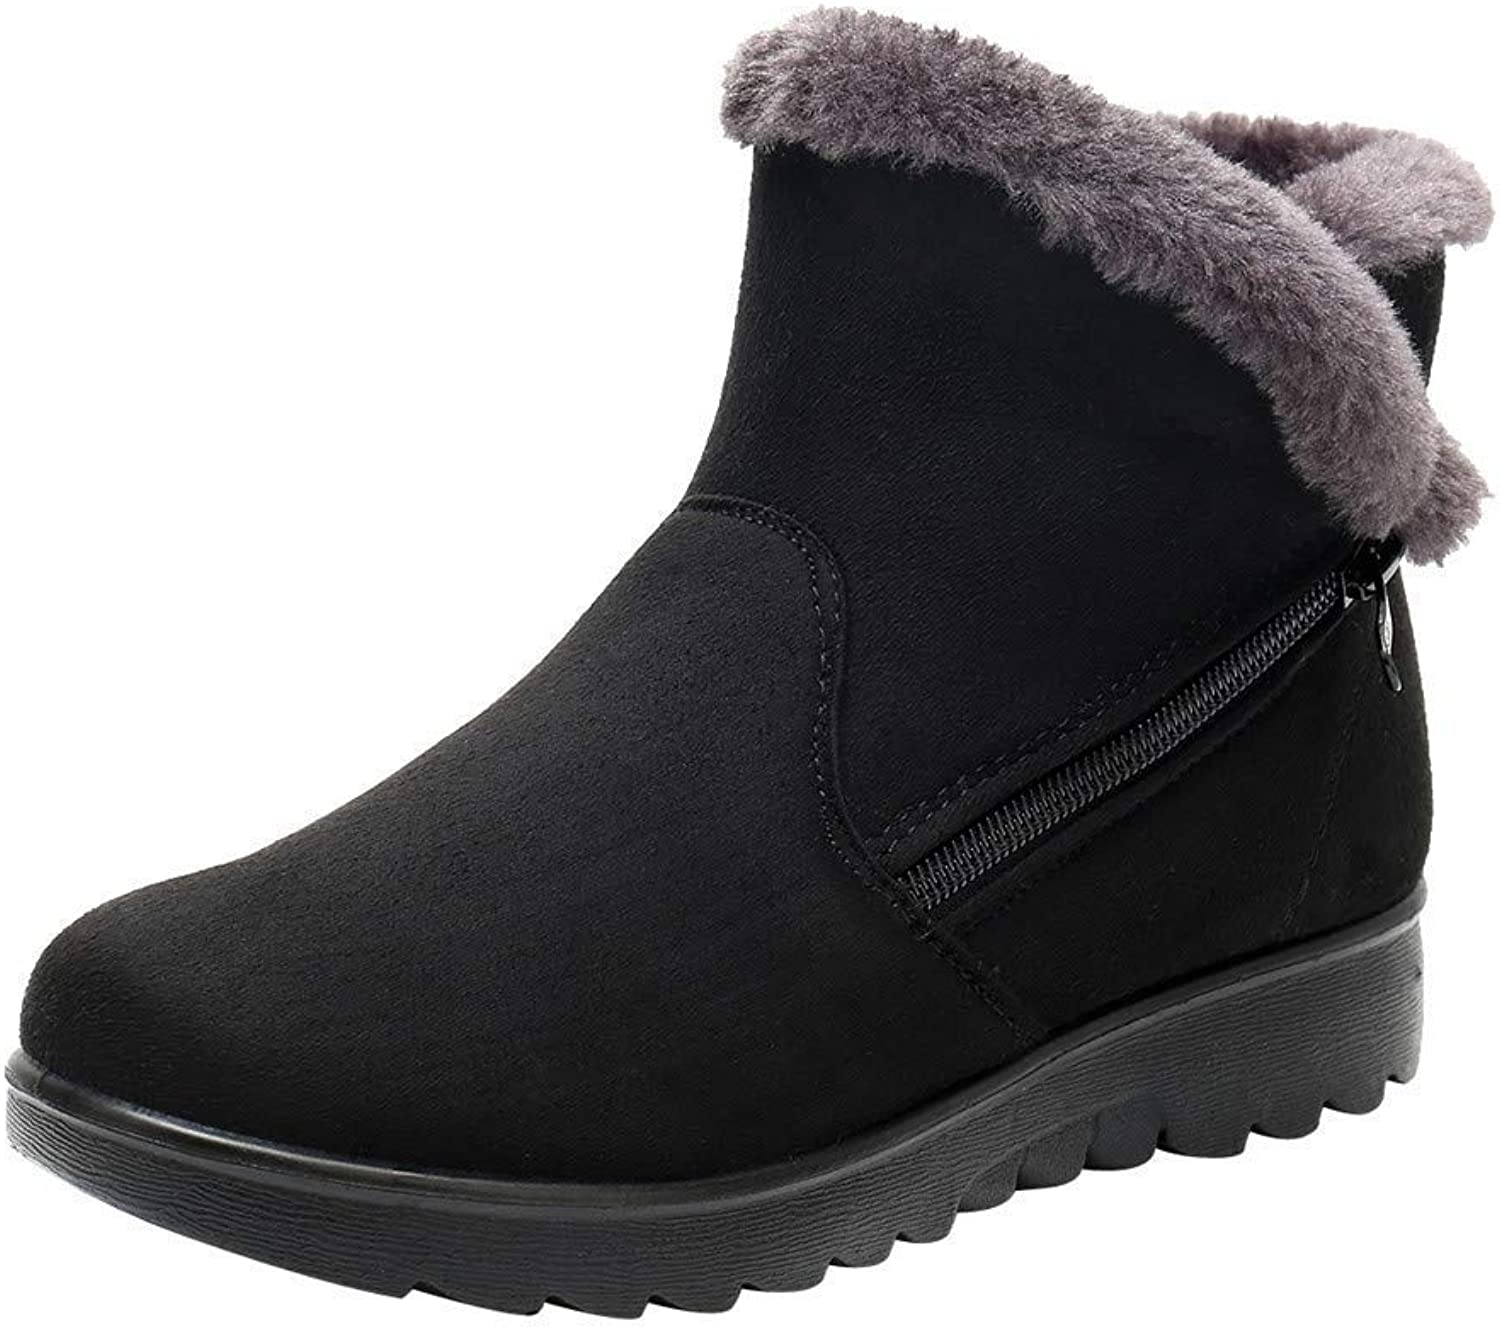 GouuoHi Womens Boots Women's Winter Knuckle Martin Short Snow Boots Fur shoes Warm shoes Red Balck Cosy Wild Tight Super Casual Quality for Womens